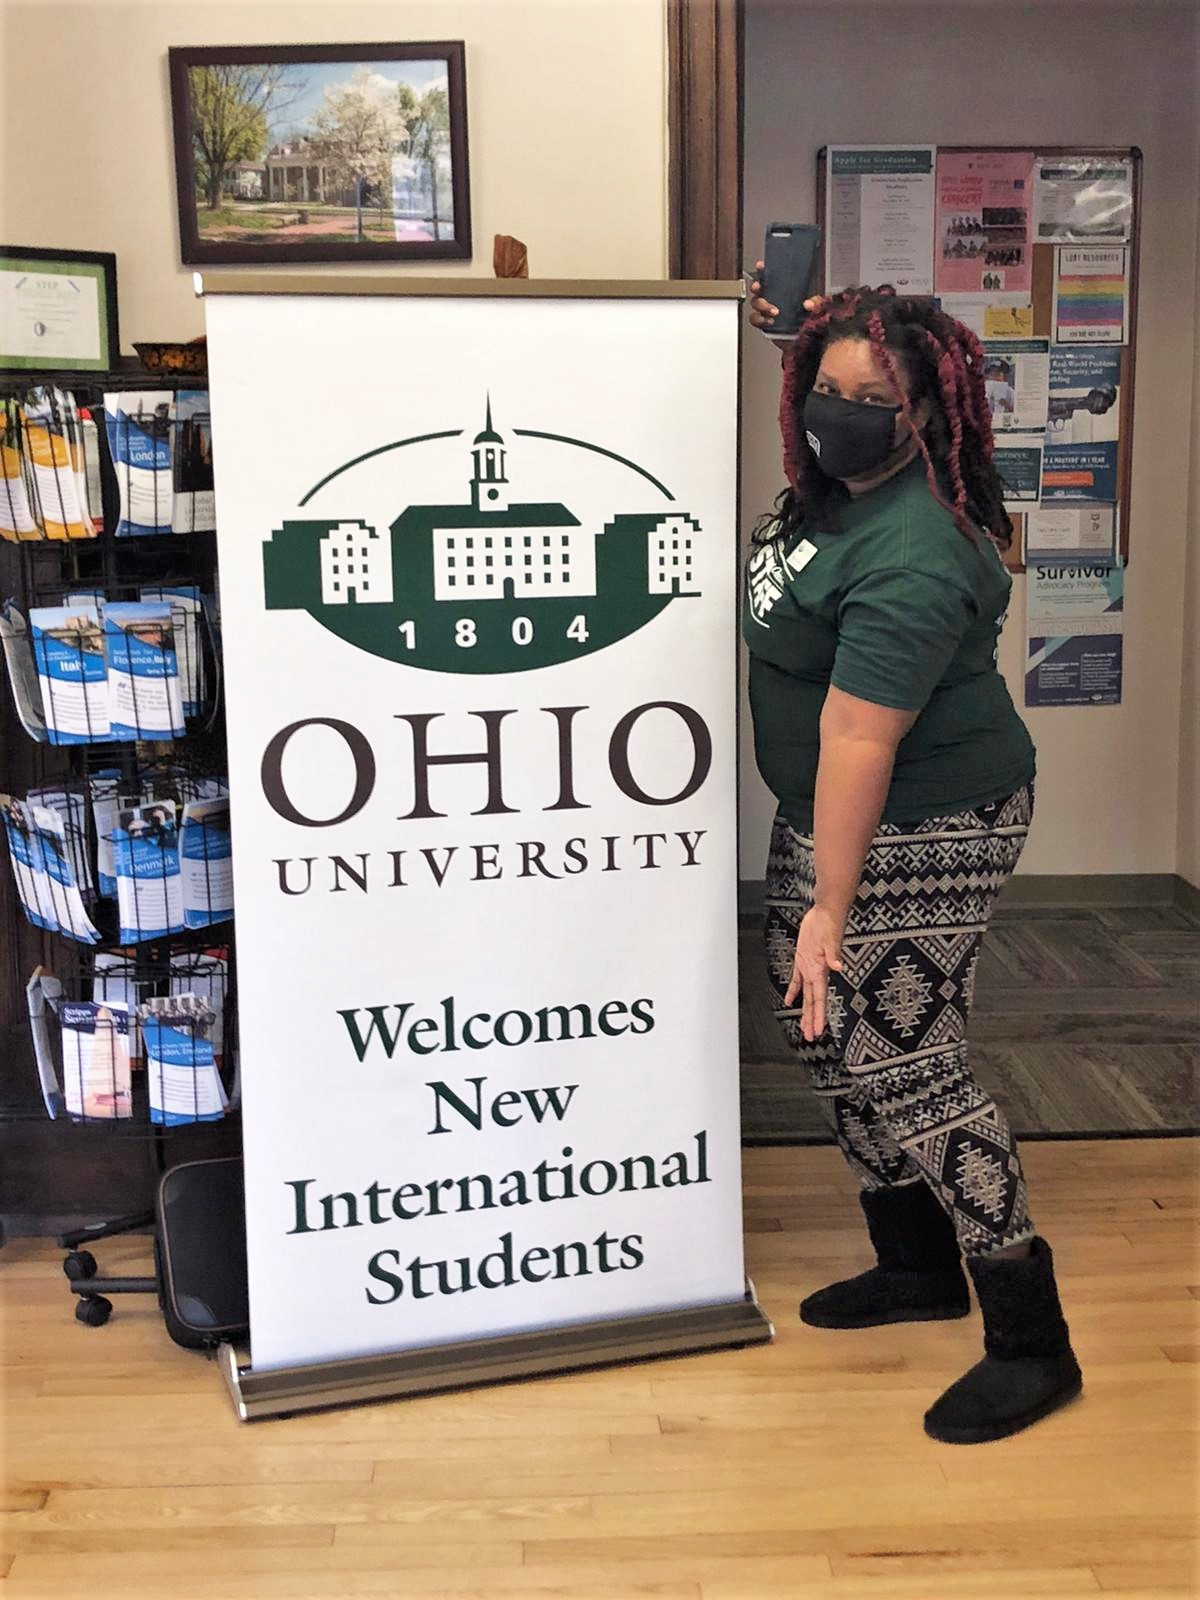 Shauna Torrington poses by sign that reads Ohio University Welcomes New International Students